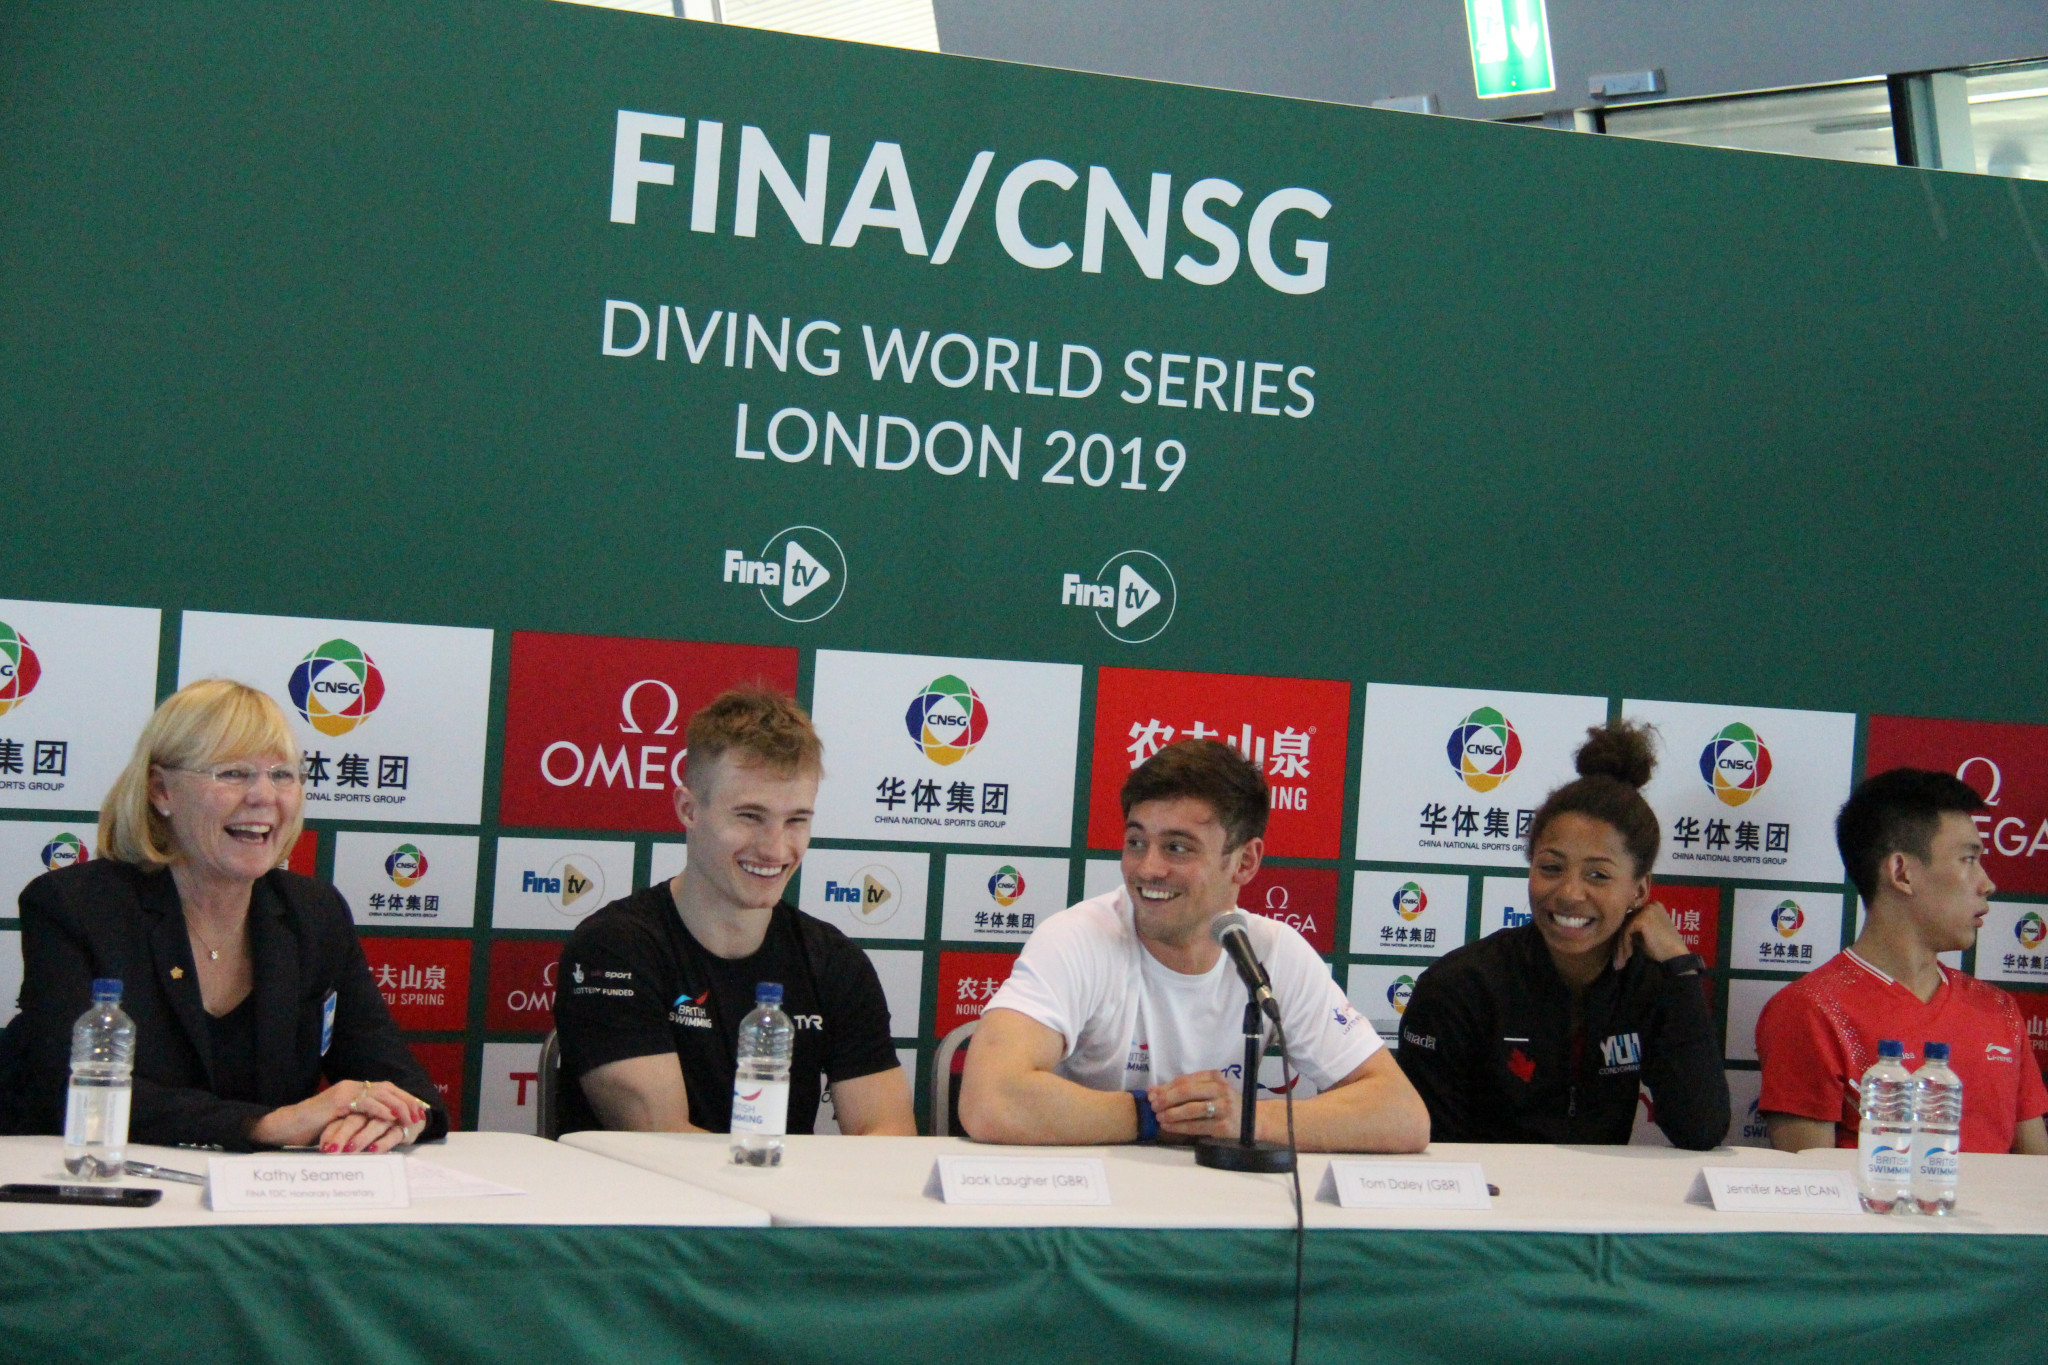 Tom Daley, third right, and his British team-mate Jack Laugher, second left, were in fine form before the start of the final FINA Diving World Series event in London ©FINA